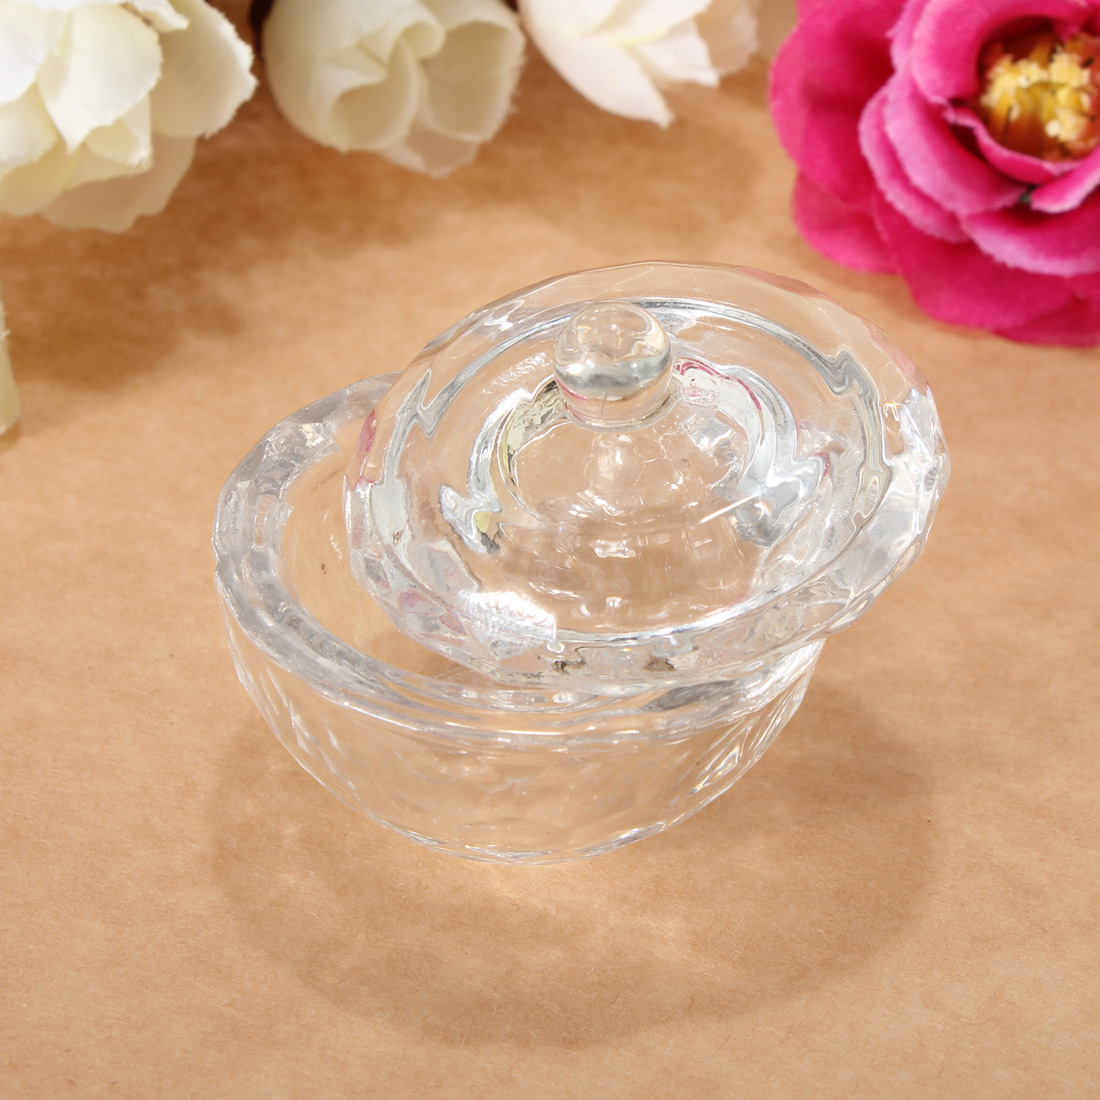 Glass Crystal Cup Dish Arcylic Nail Art Liquid Powder Container